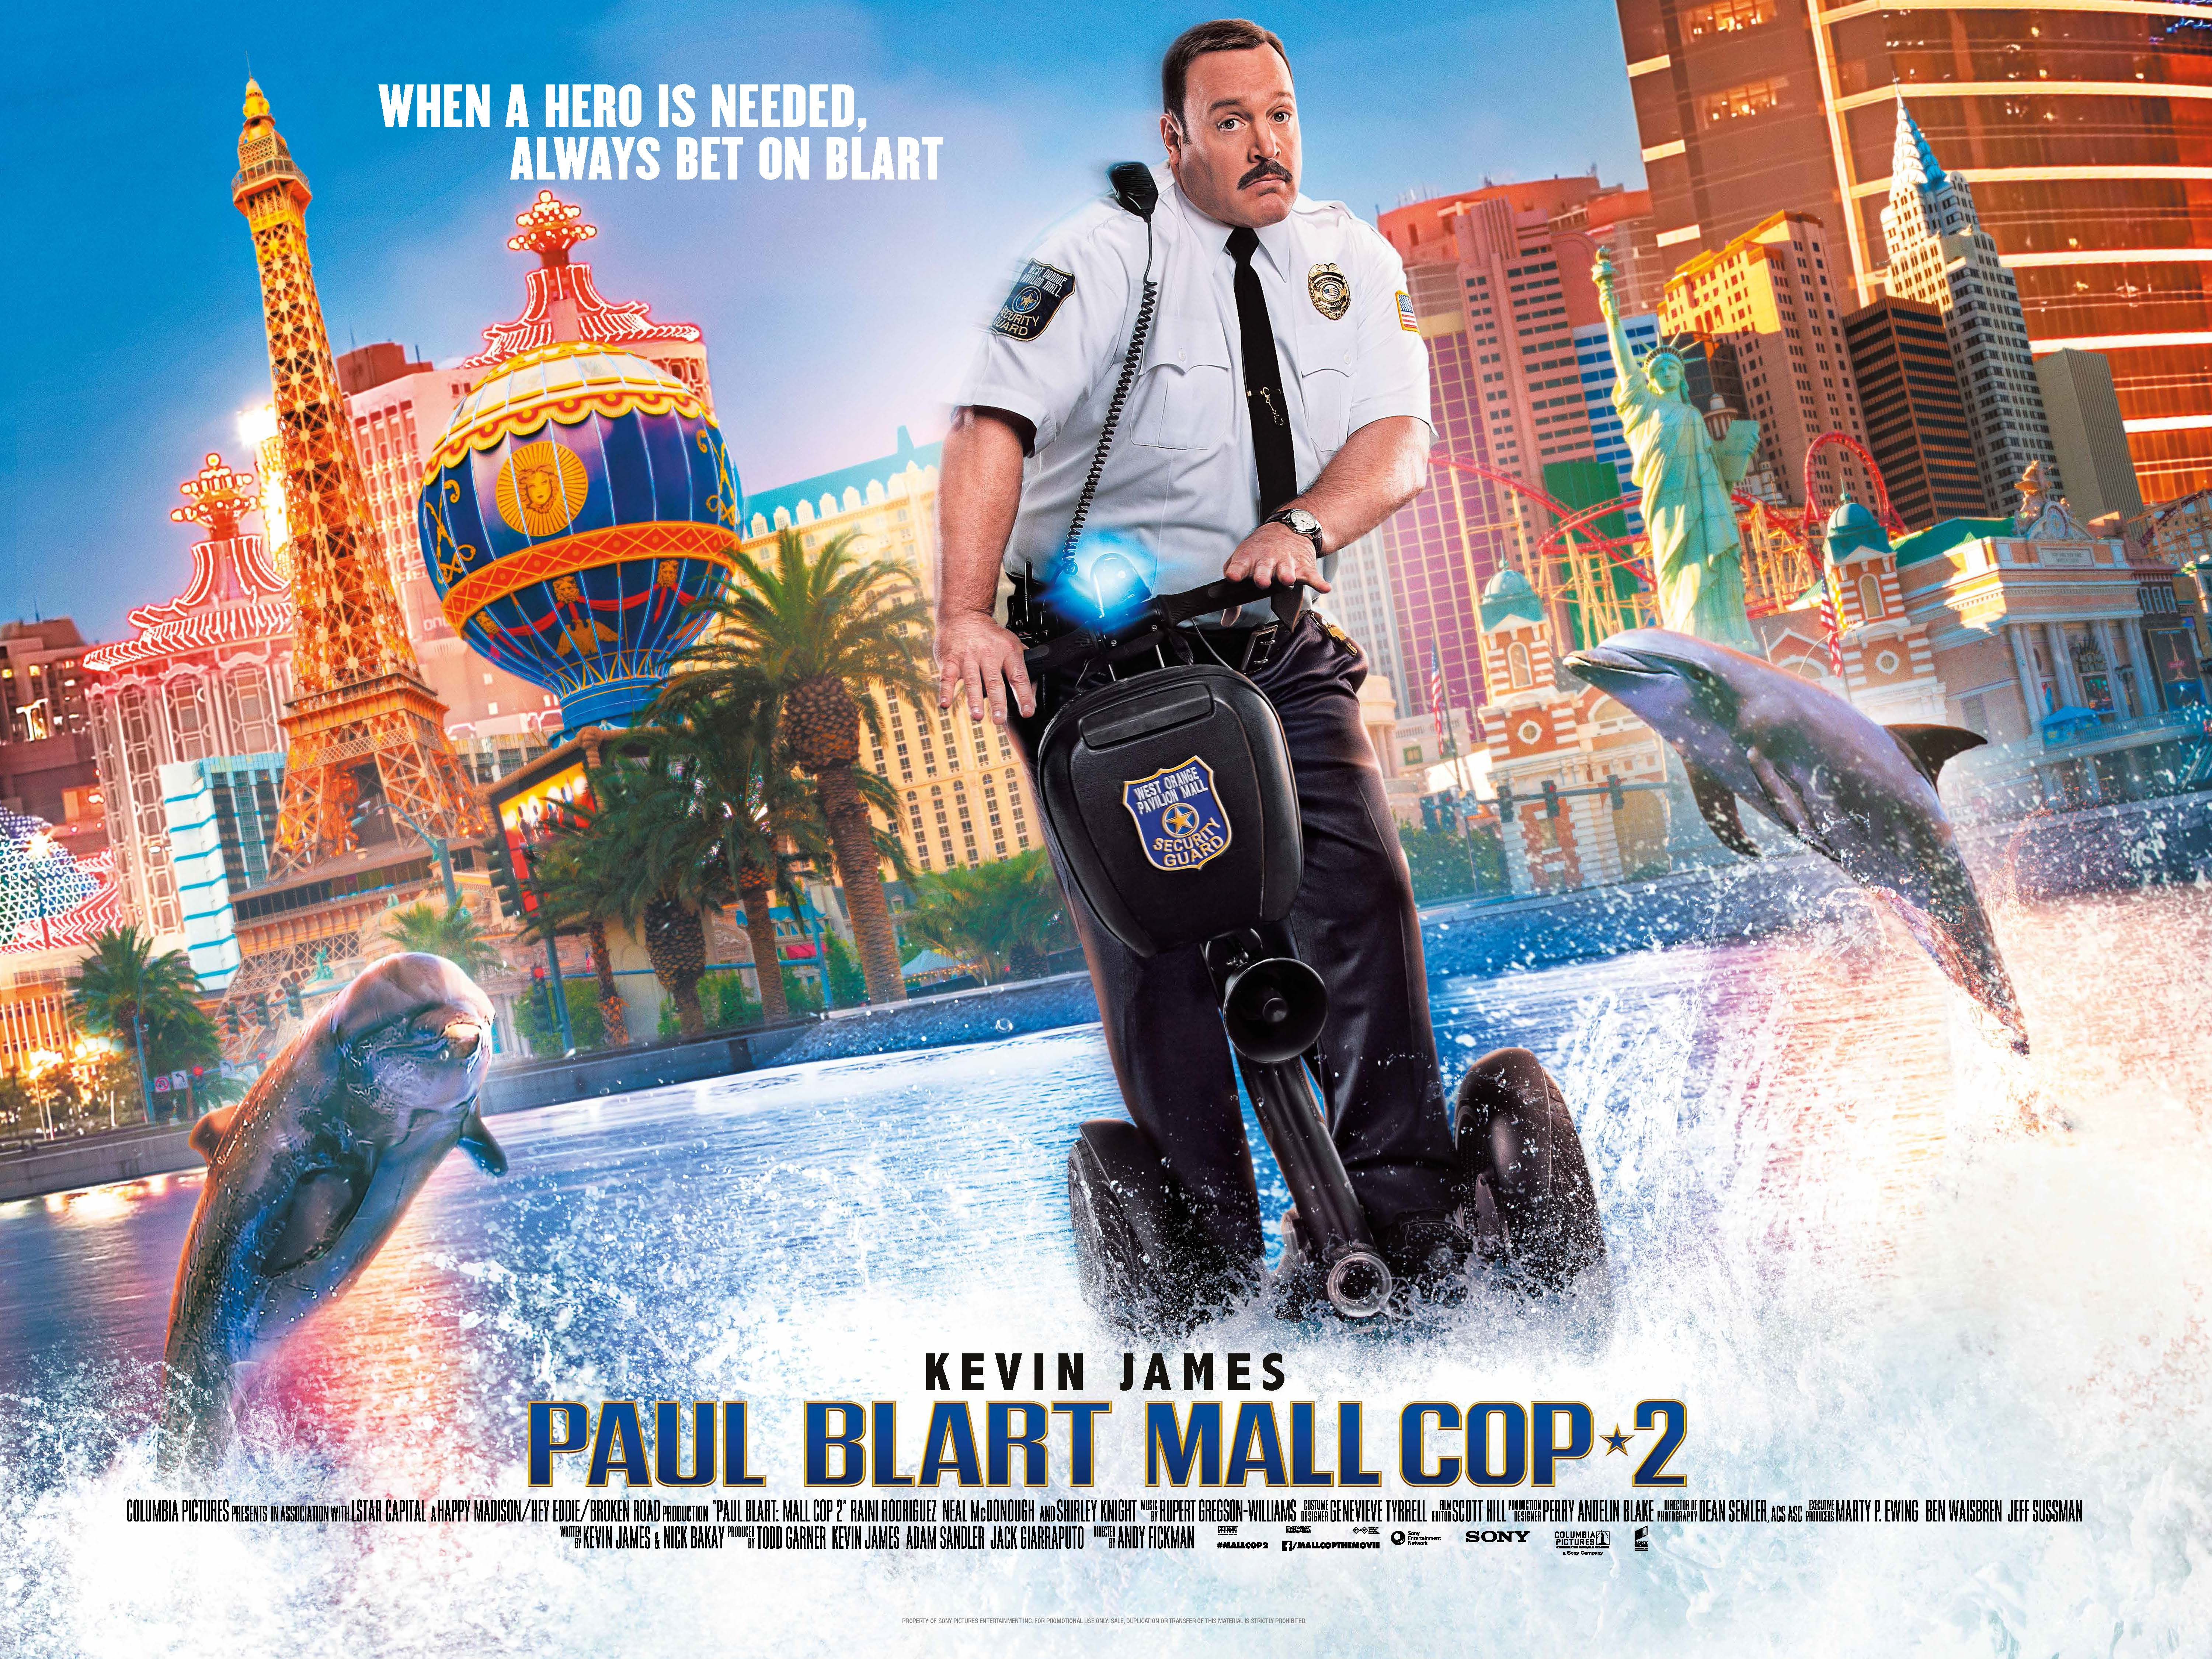 Movie Posters 2015: Paul Blart Mall Cop 2 Movie Poster 3